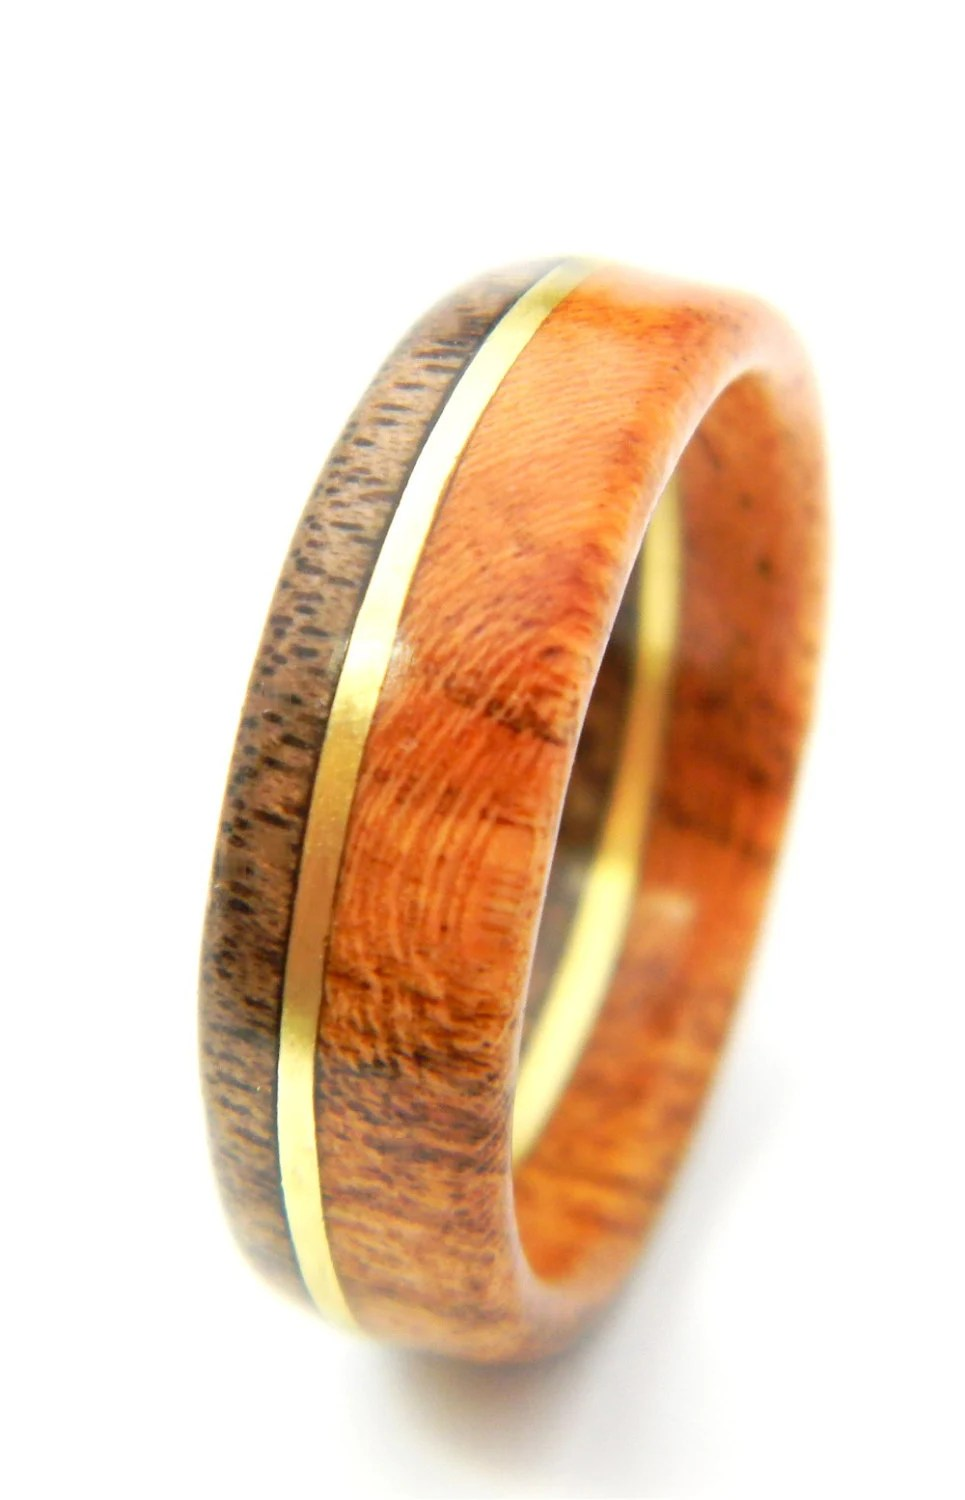 Unique Walnut And Cherry Wood Engagement Ring Jewelry Ring